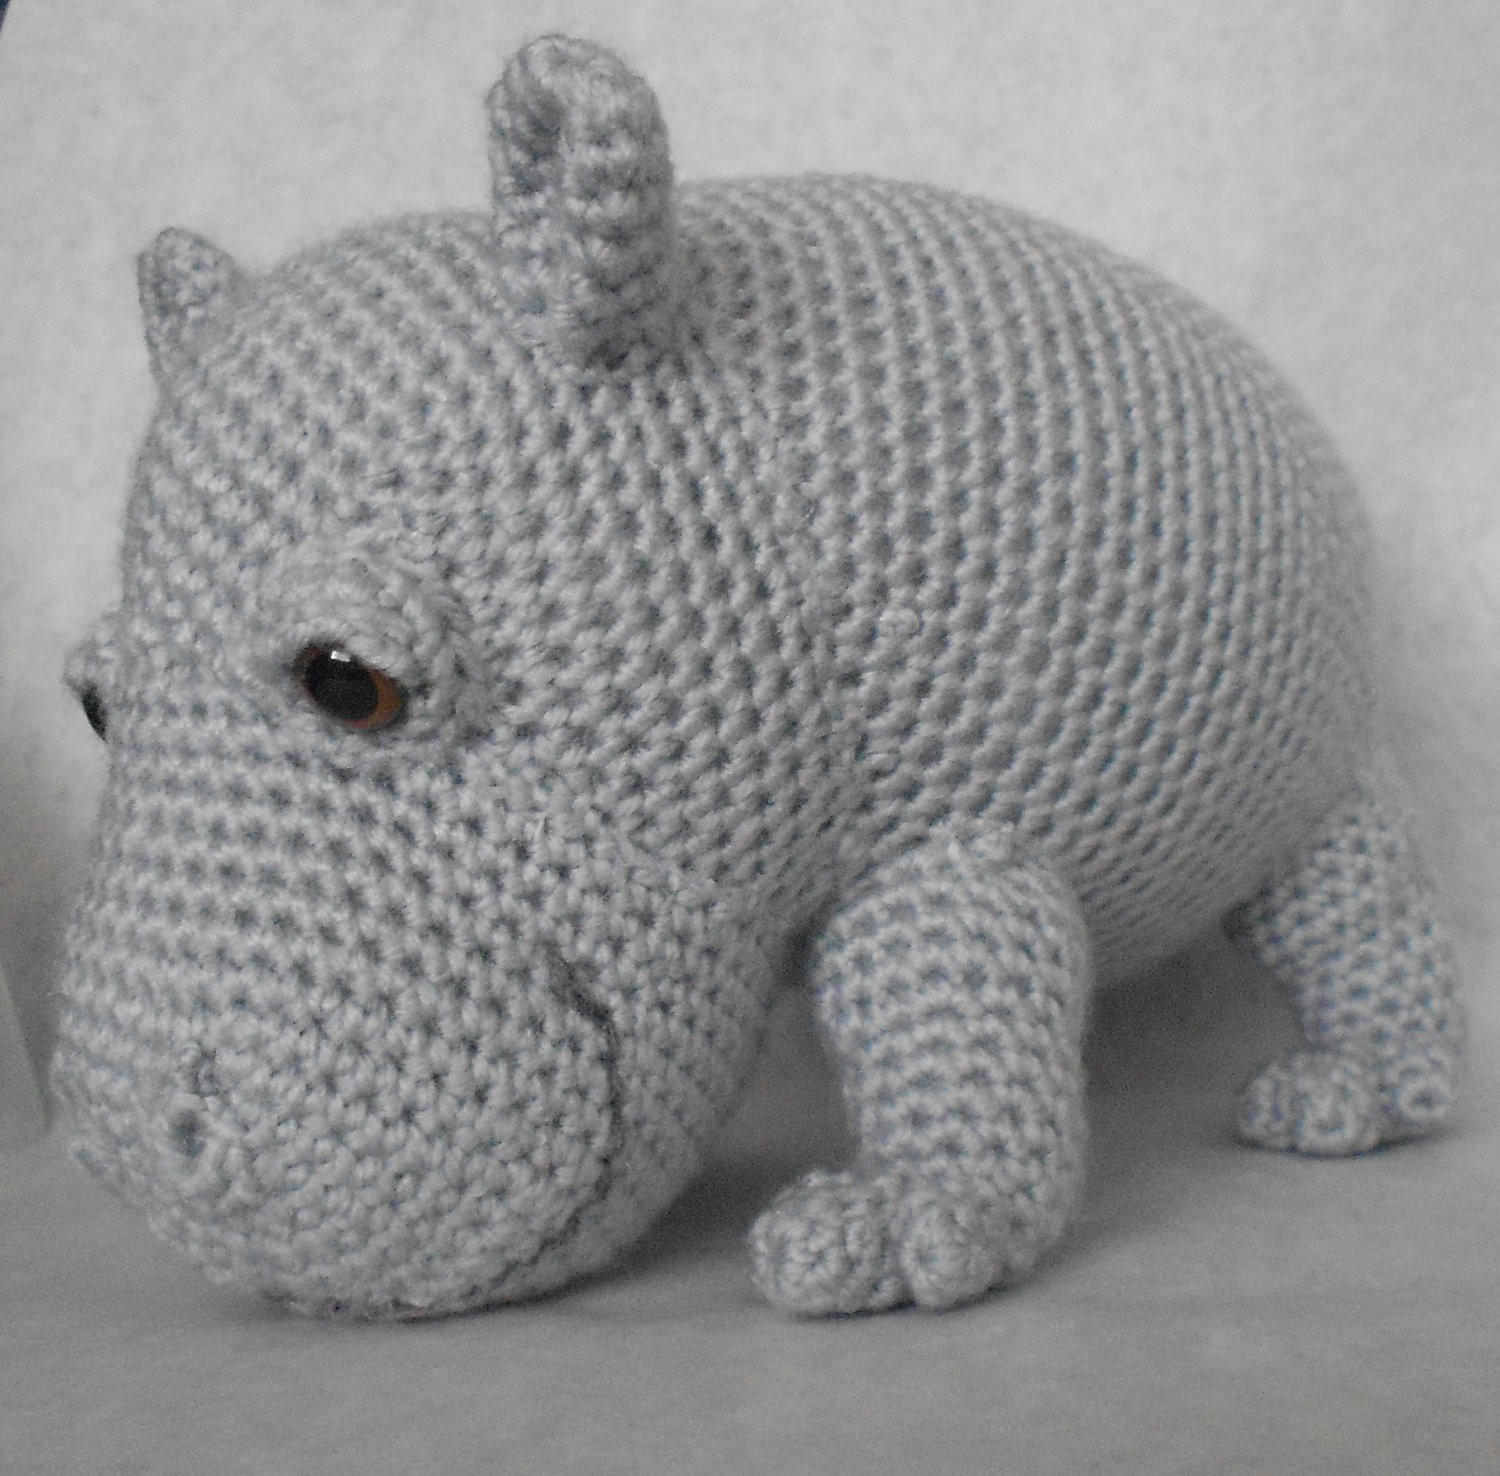 Crochet Hippo Pattern Free Best Of Hippo Amigurumi Crochet Pattern Of Awesome 40 Pics Crochet Hippo Pattern Free